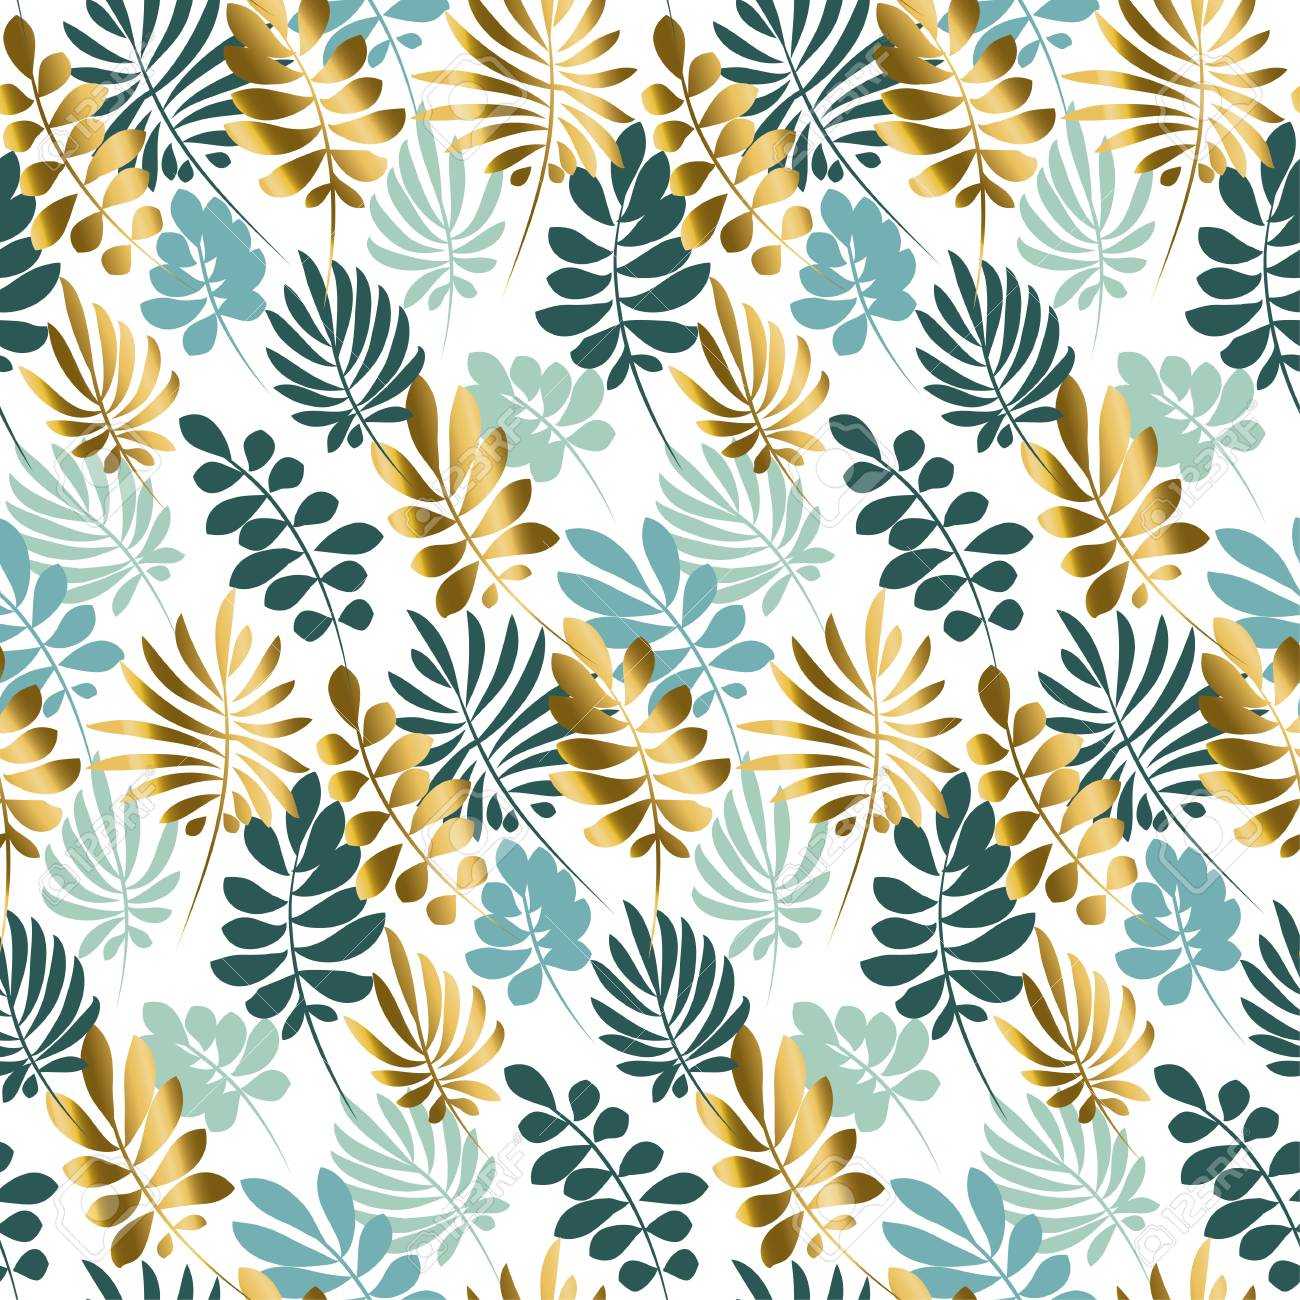 Abstract Tropical Leaves Seamless Pattern In Tender Pastel Color Royalty Free Cliparts Vectors And Stock Illustration Image 75414434 Vector image summer trendy tropical palm leaves header template with twinkling. abstract tropical leaves seamless pattern in tender pastel color